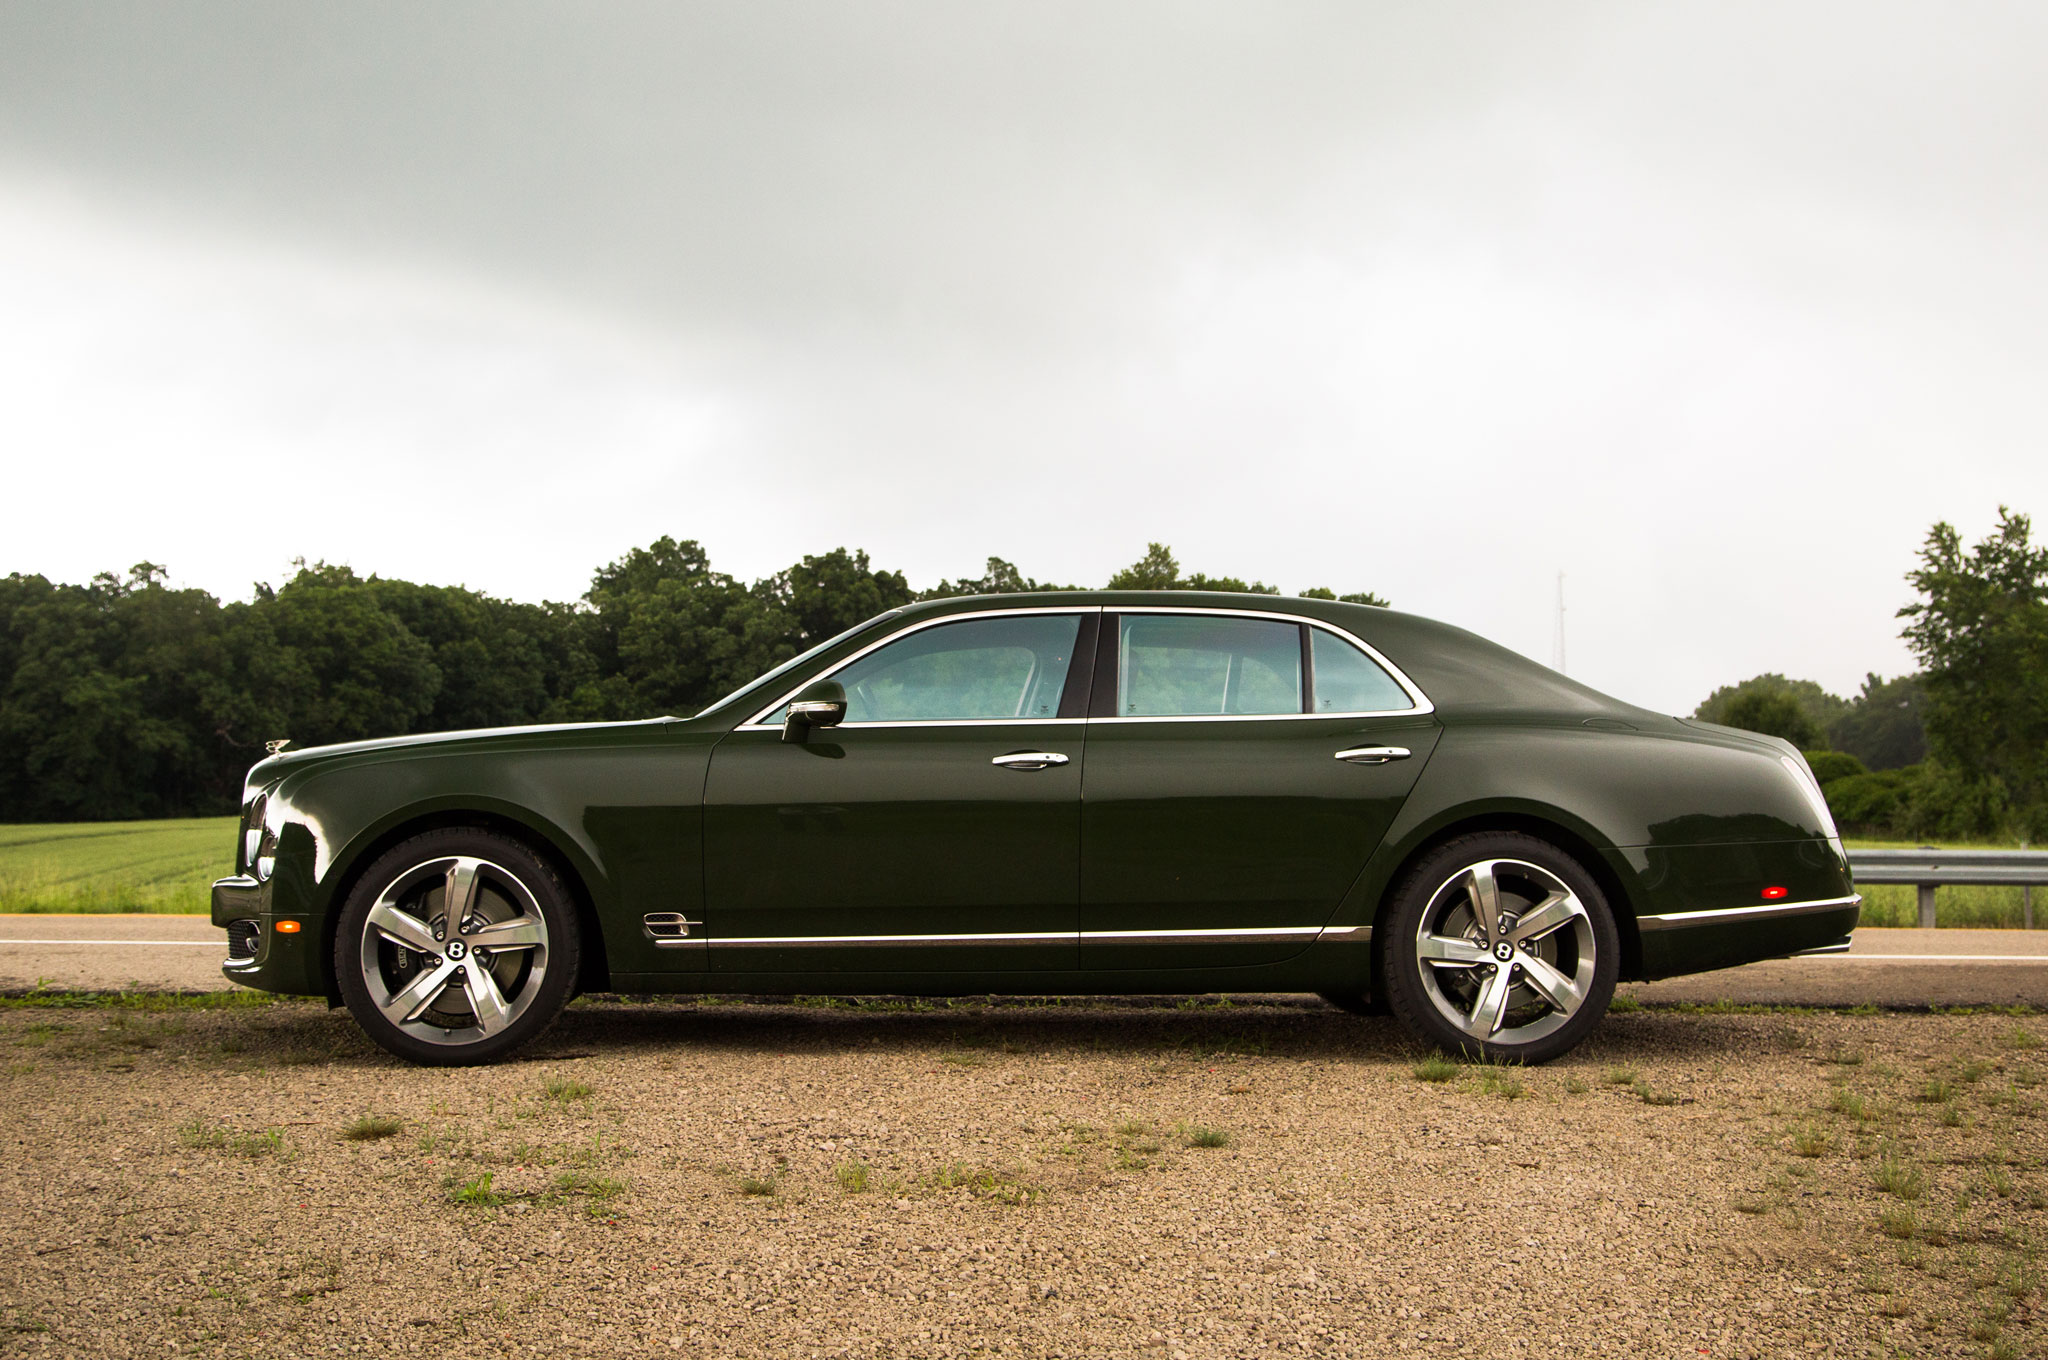 Bentley Mulsanne 2016 : 2016 bentley mulsanne speed review ~ Maxctalentgroup.com Avis de Voitures